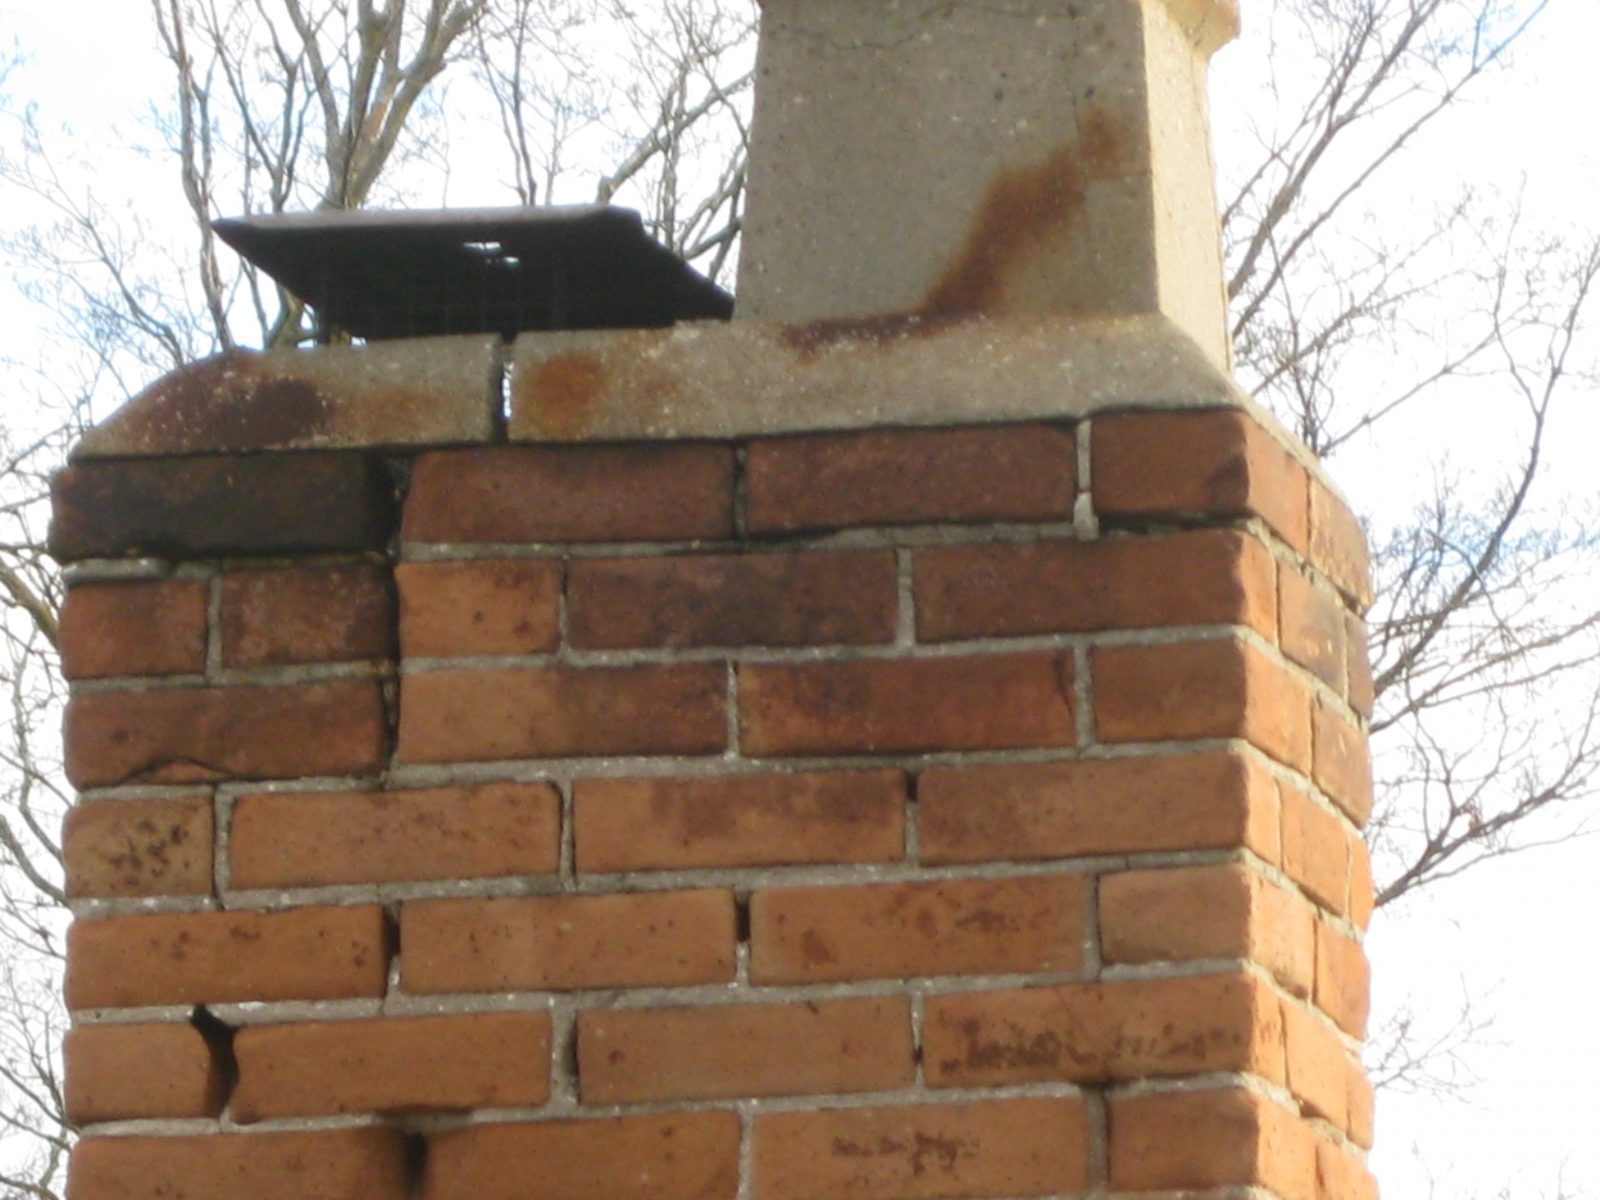 Chimney has structural damage and requires rebuilding.